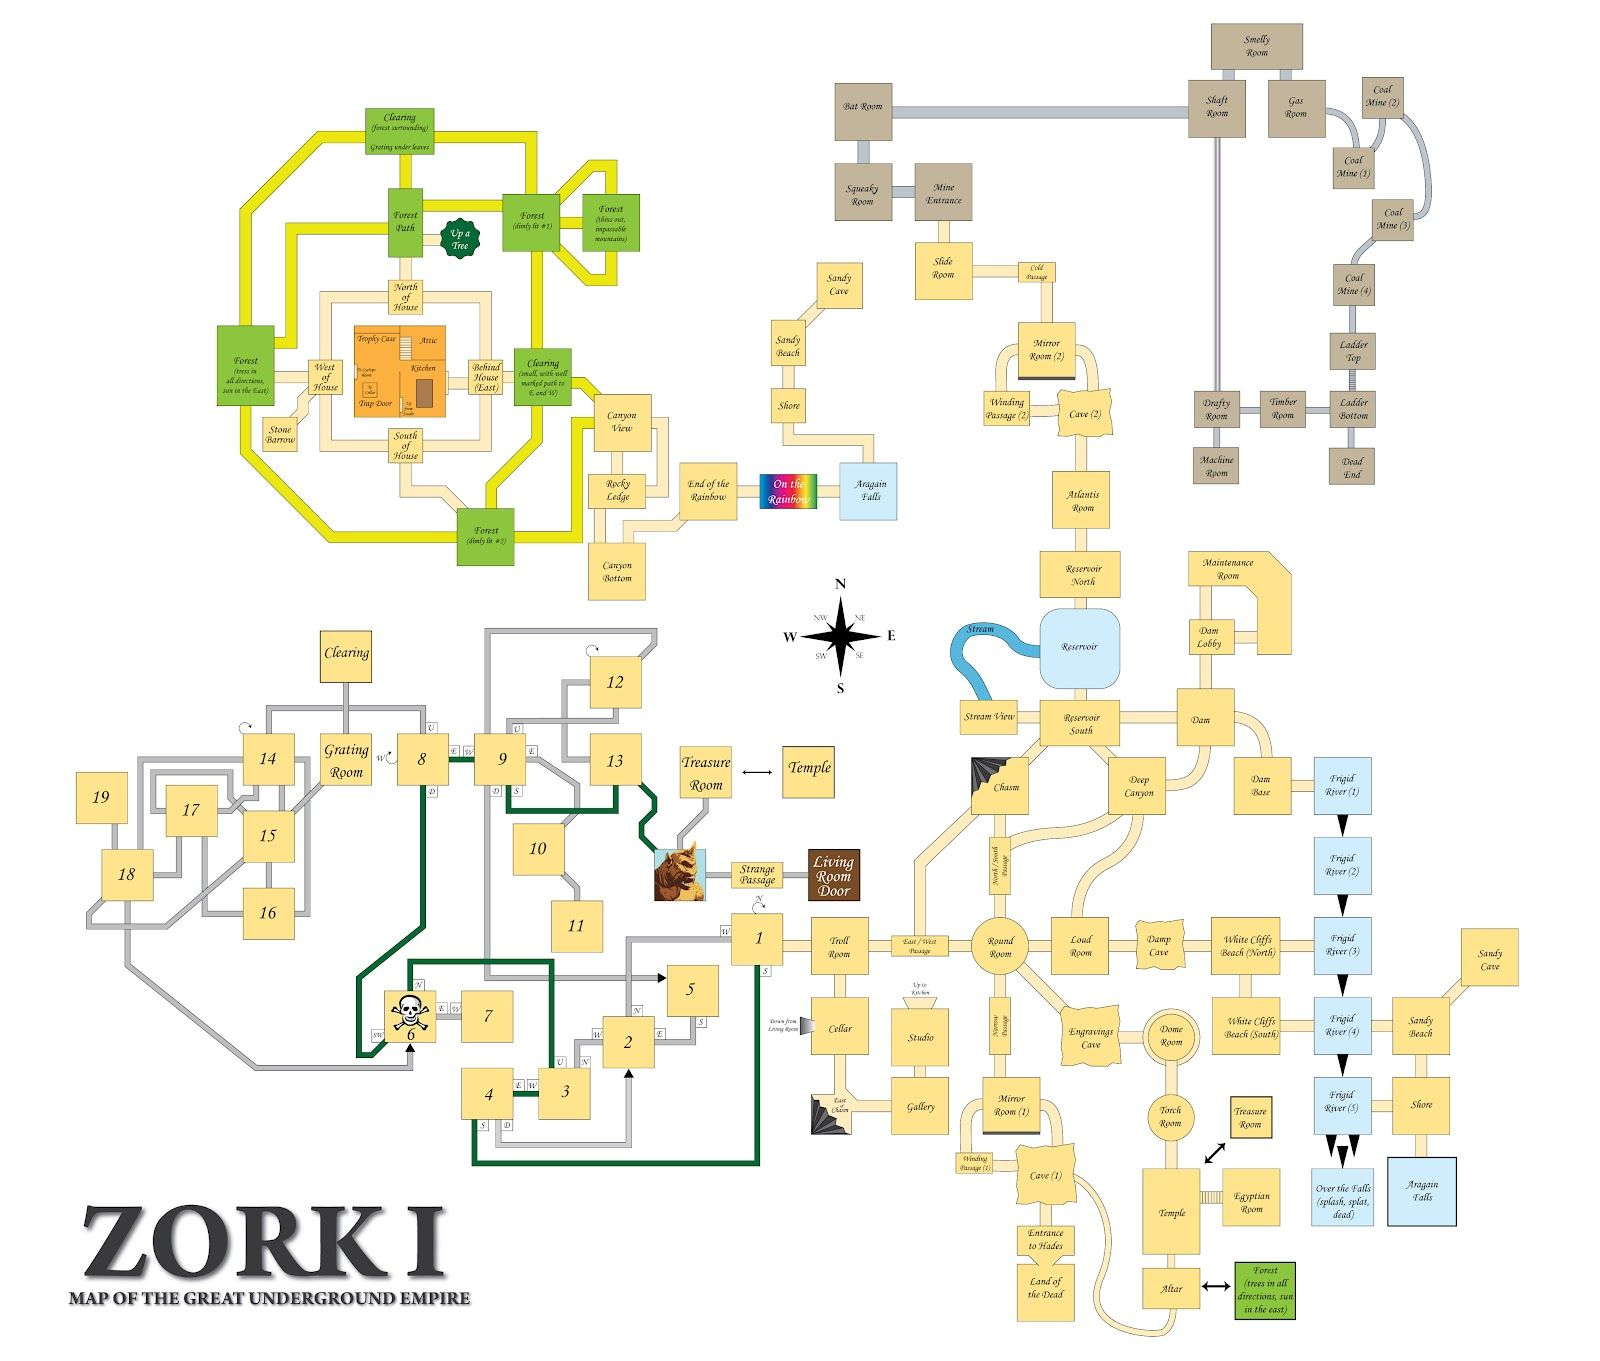 Zork - The Great Underground Empire | D&D - Maps in 2019 | Art ... Zork Map on gears of war map, far cry 2 map, pac-man map, sid meier's alpha centauri map, the great maze map, return to zork, civilization map, portal map, zork zero, ace combat map, beyond zork, interactive fiction, zork ii, etrian odyssey map, starcraft map, a mind forever voyaging, proving grounds of the mad overlord, colossal cave adventure, dead ops arcade map, zork: the undiscovered underground, galactic empire map, the lost treasures of infocom, zork: nemesis, small amusement park map, pool of radiance map, myst map, world of warcraft map, metal gear solid map, super mario bros. map, the witcher map,